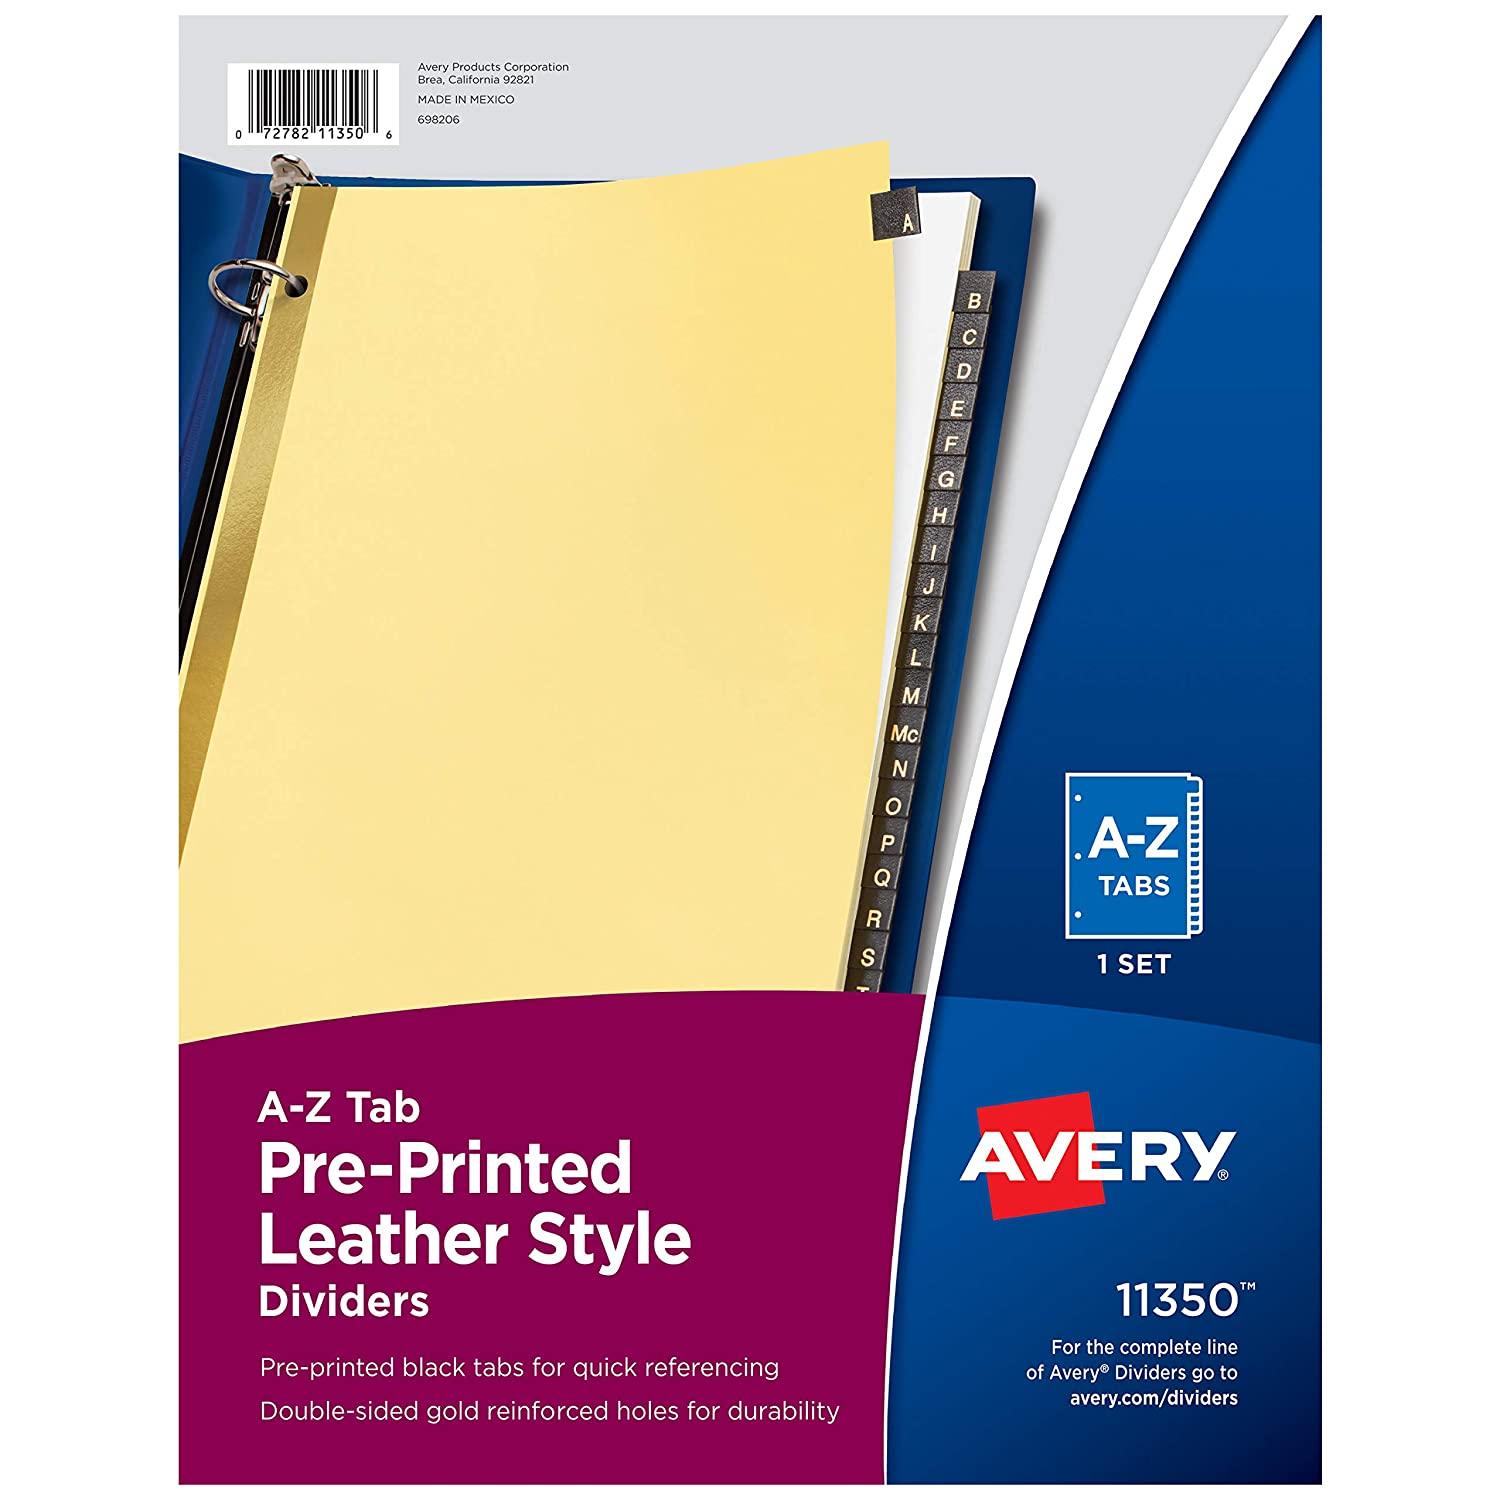 Avery A-Z Tab Binder Dividers, Pre-Printed Black Leather Style Tabs, 25-Tab, 1 Set (11350)